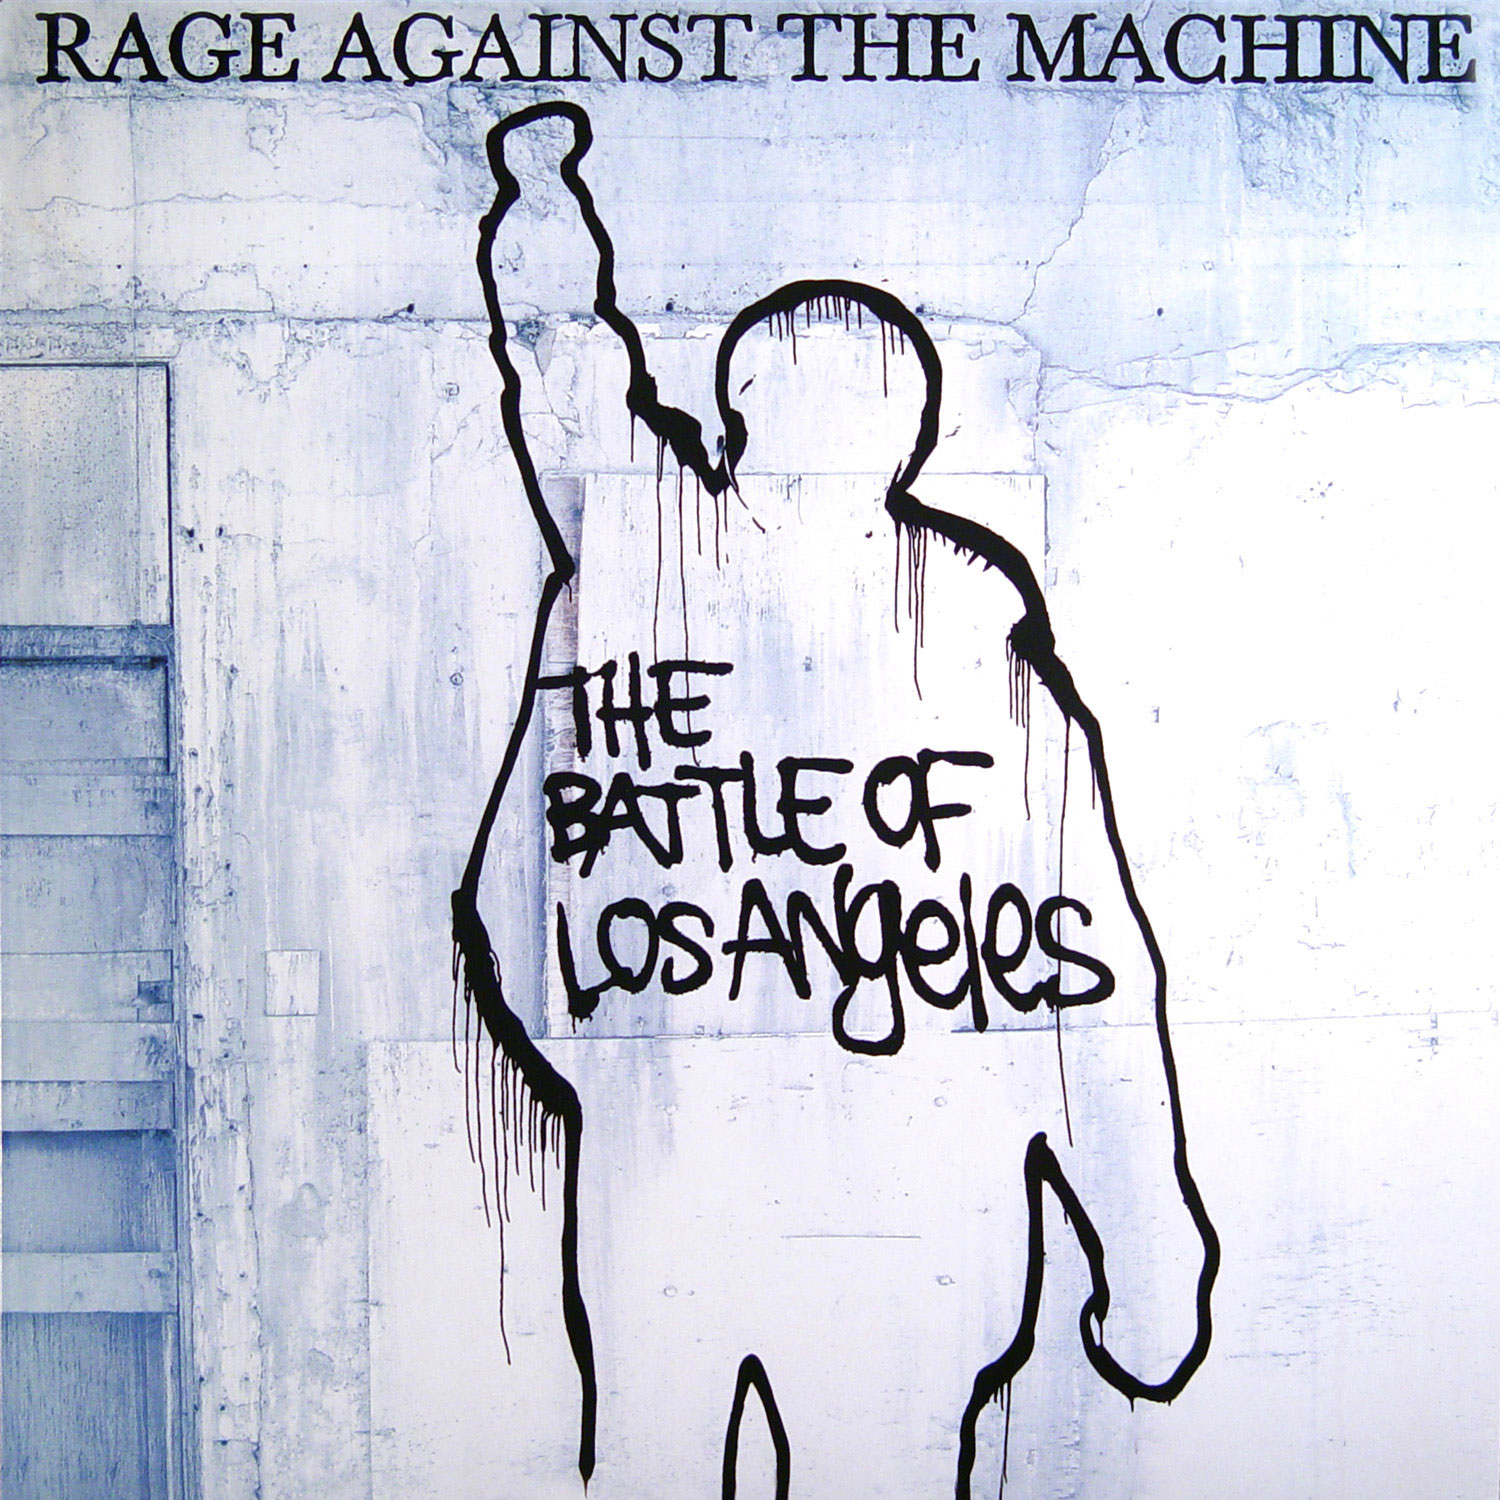 Rage Against The Machine - The Battle of Los Angeles - 1999